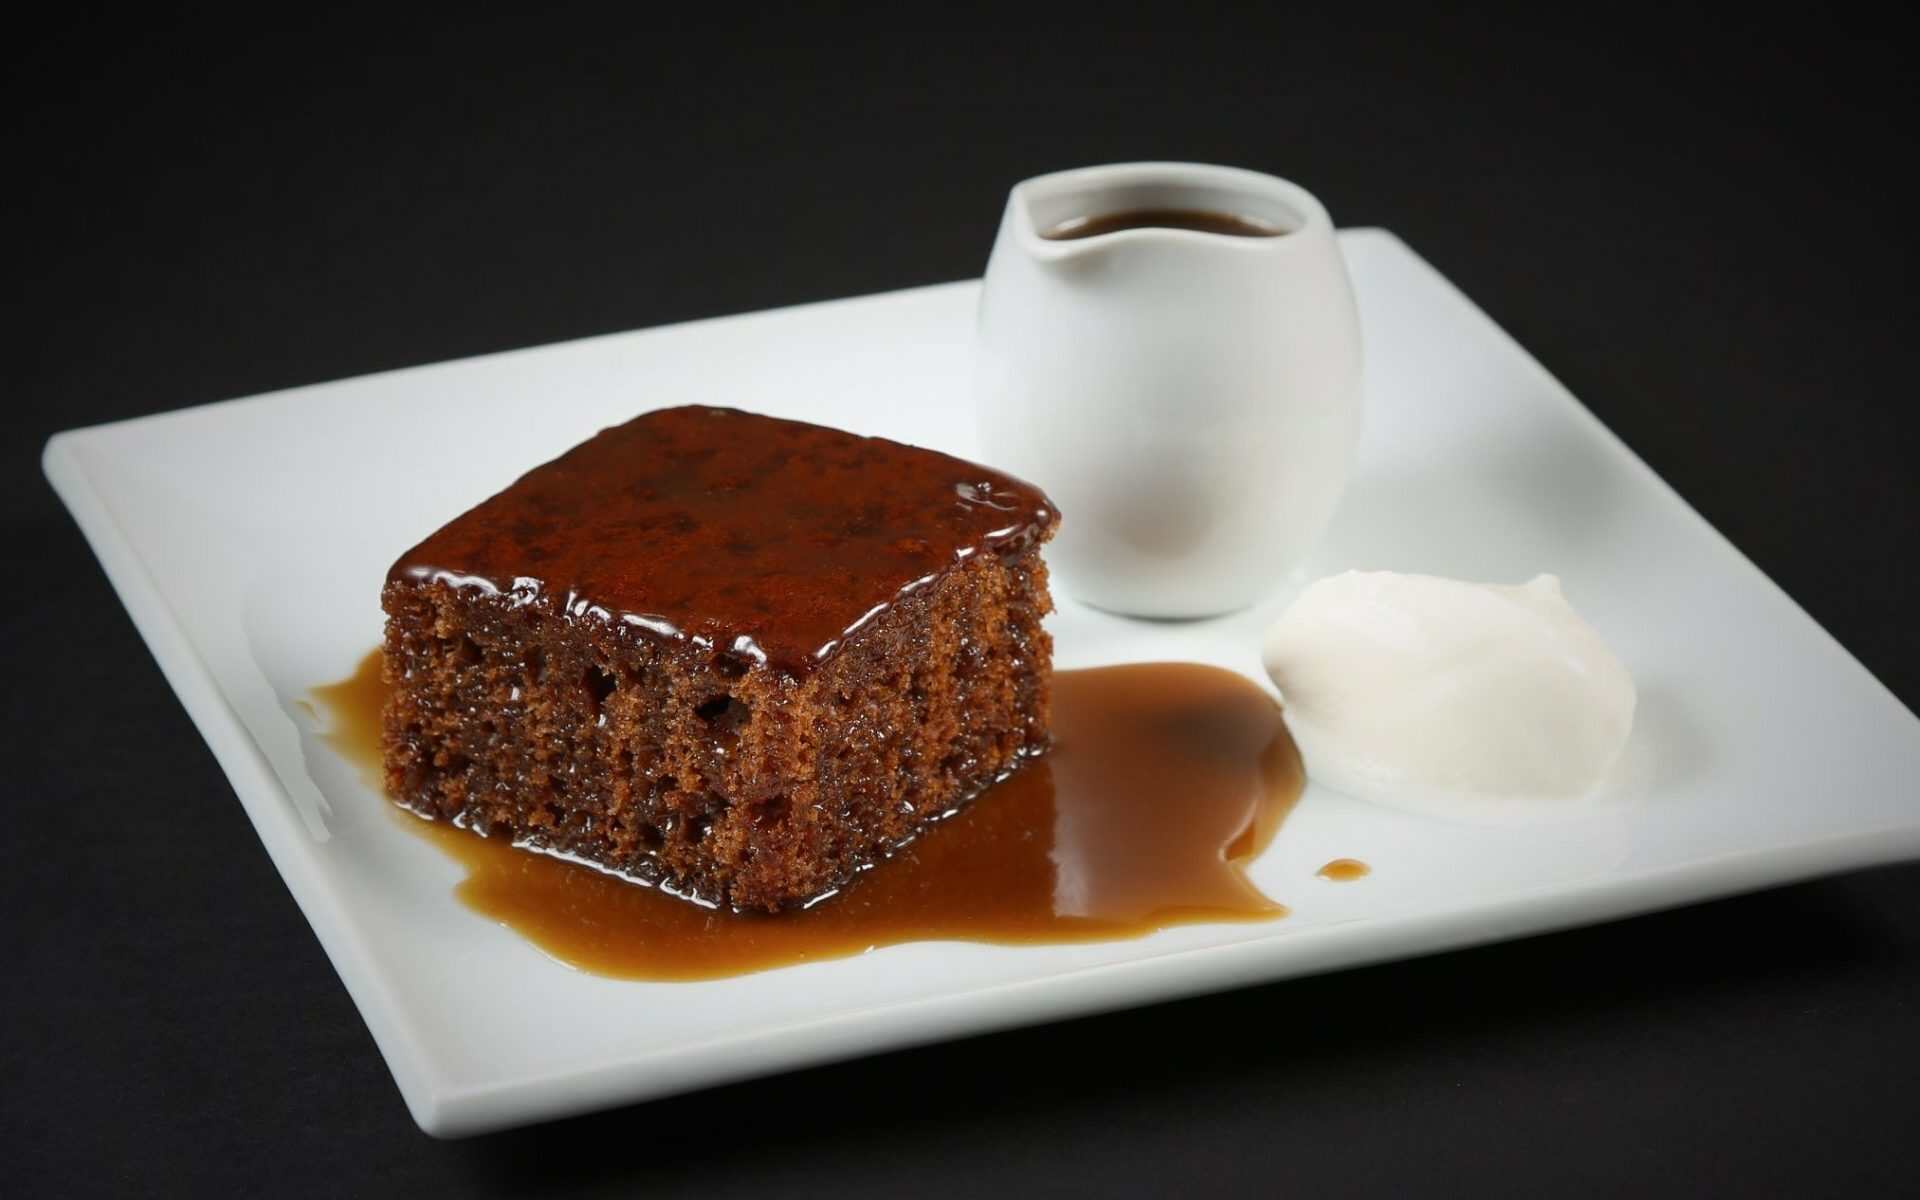 1 portion of sticky toffee pudding with ice cream on side